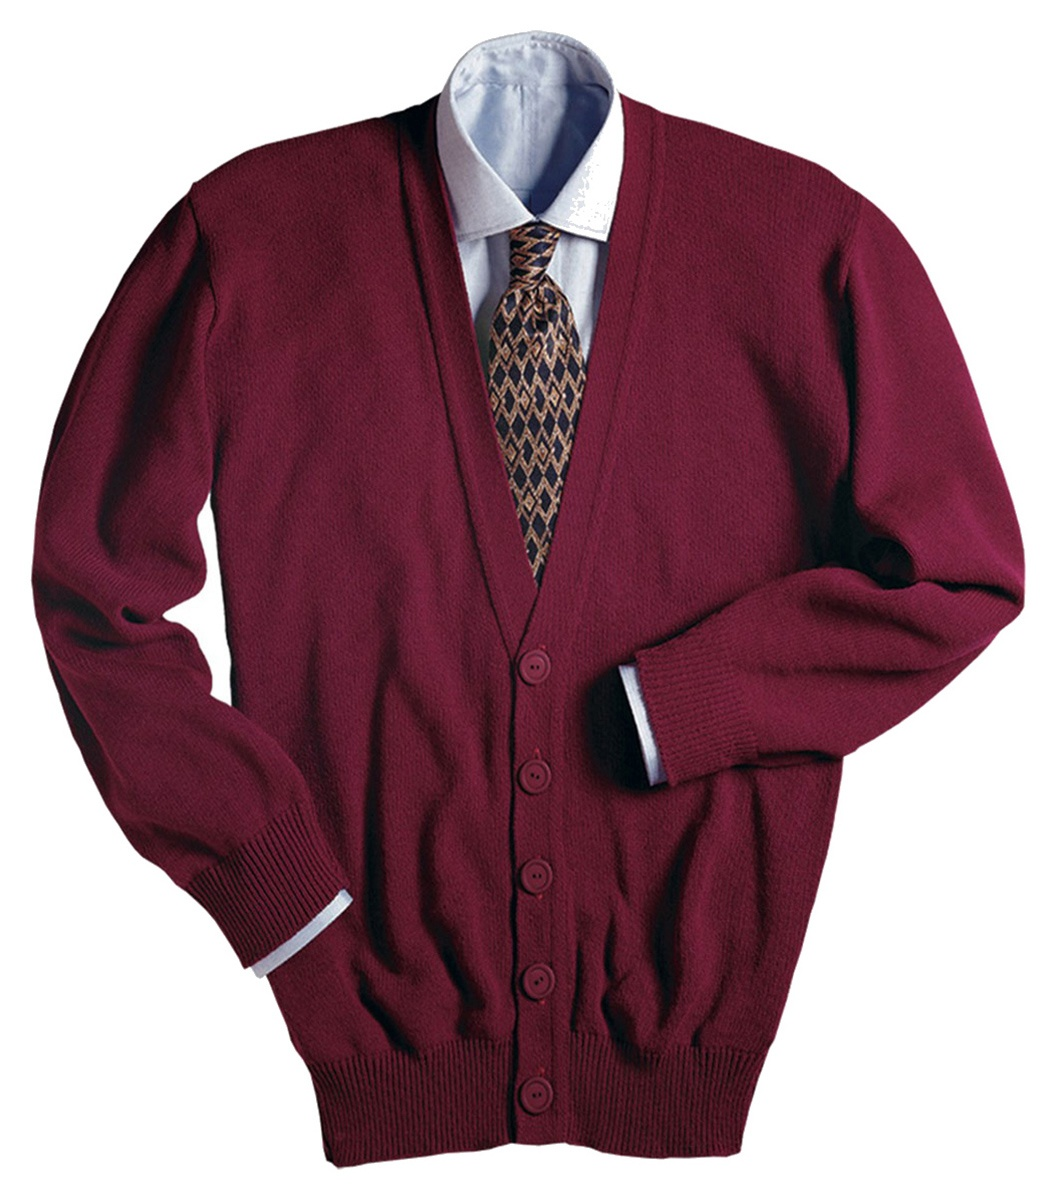 'Edwards 351 V-Neck Button Acrylic Cardigan Sweater'